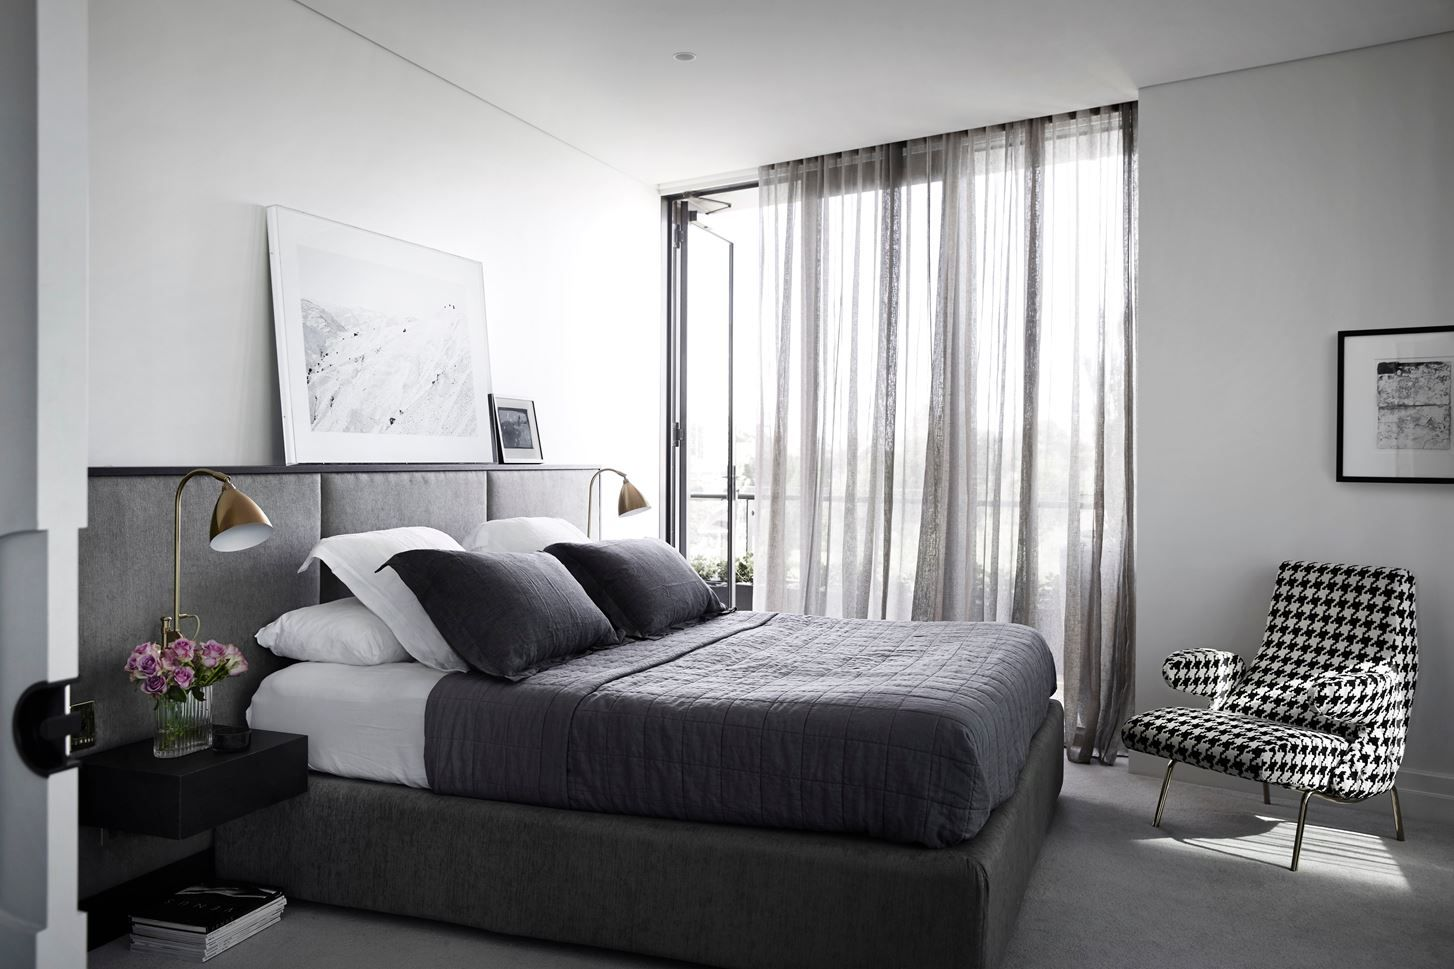 1556710909 509 make your windows the star of the room with these bedroom curtain ideas - Make your Windows the Star of the Room With These Bedroom Curtain Ideas